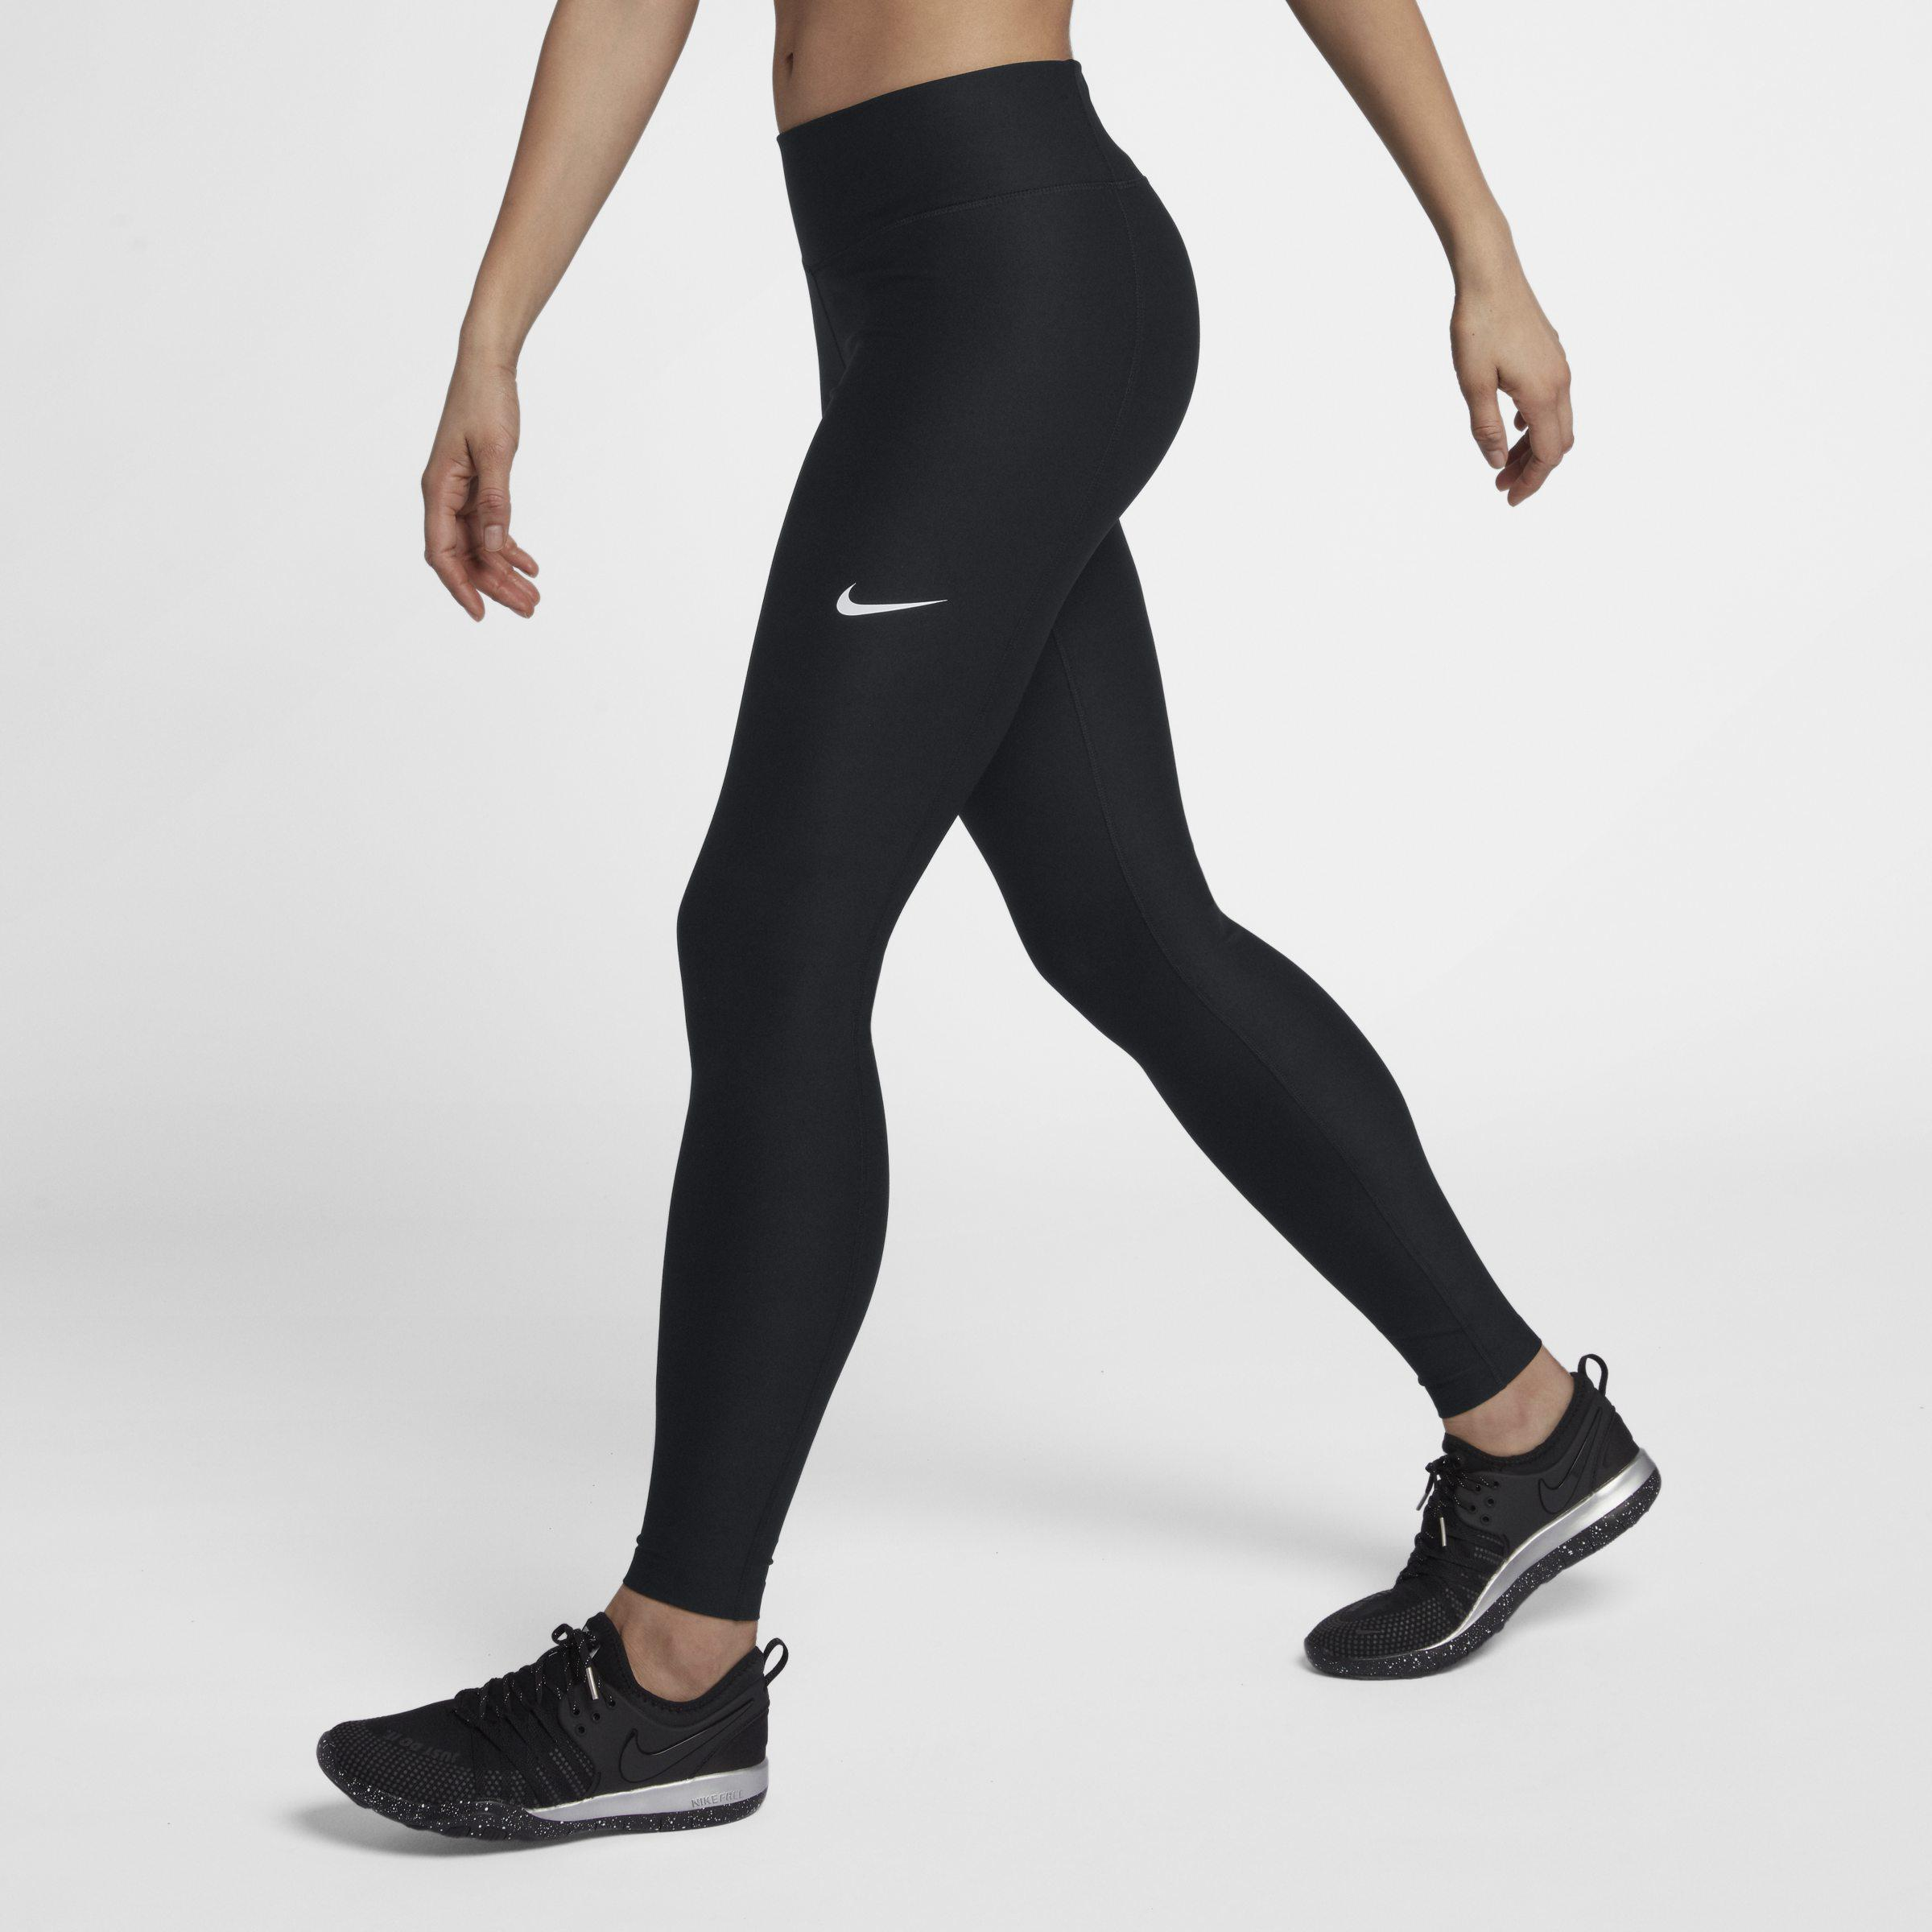 b90cf1a760e6be Nike Power Victory Training Tights in Black - Lyst